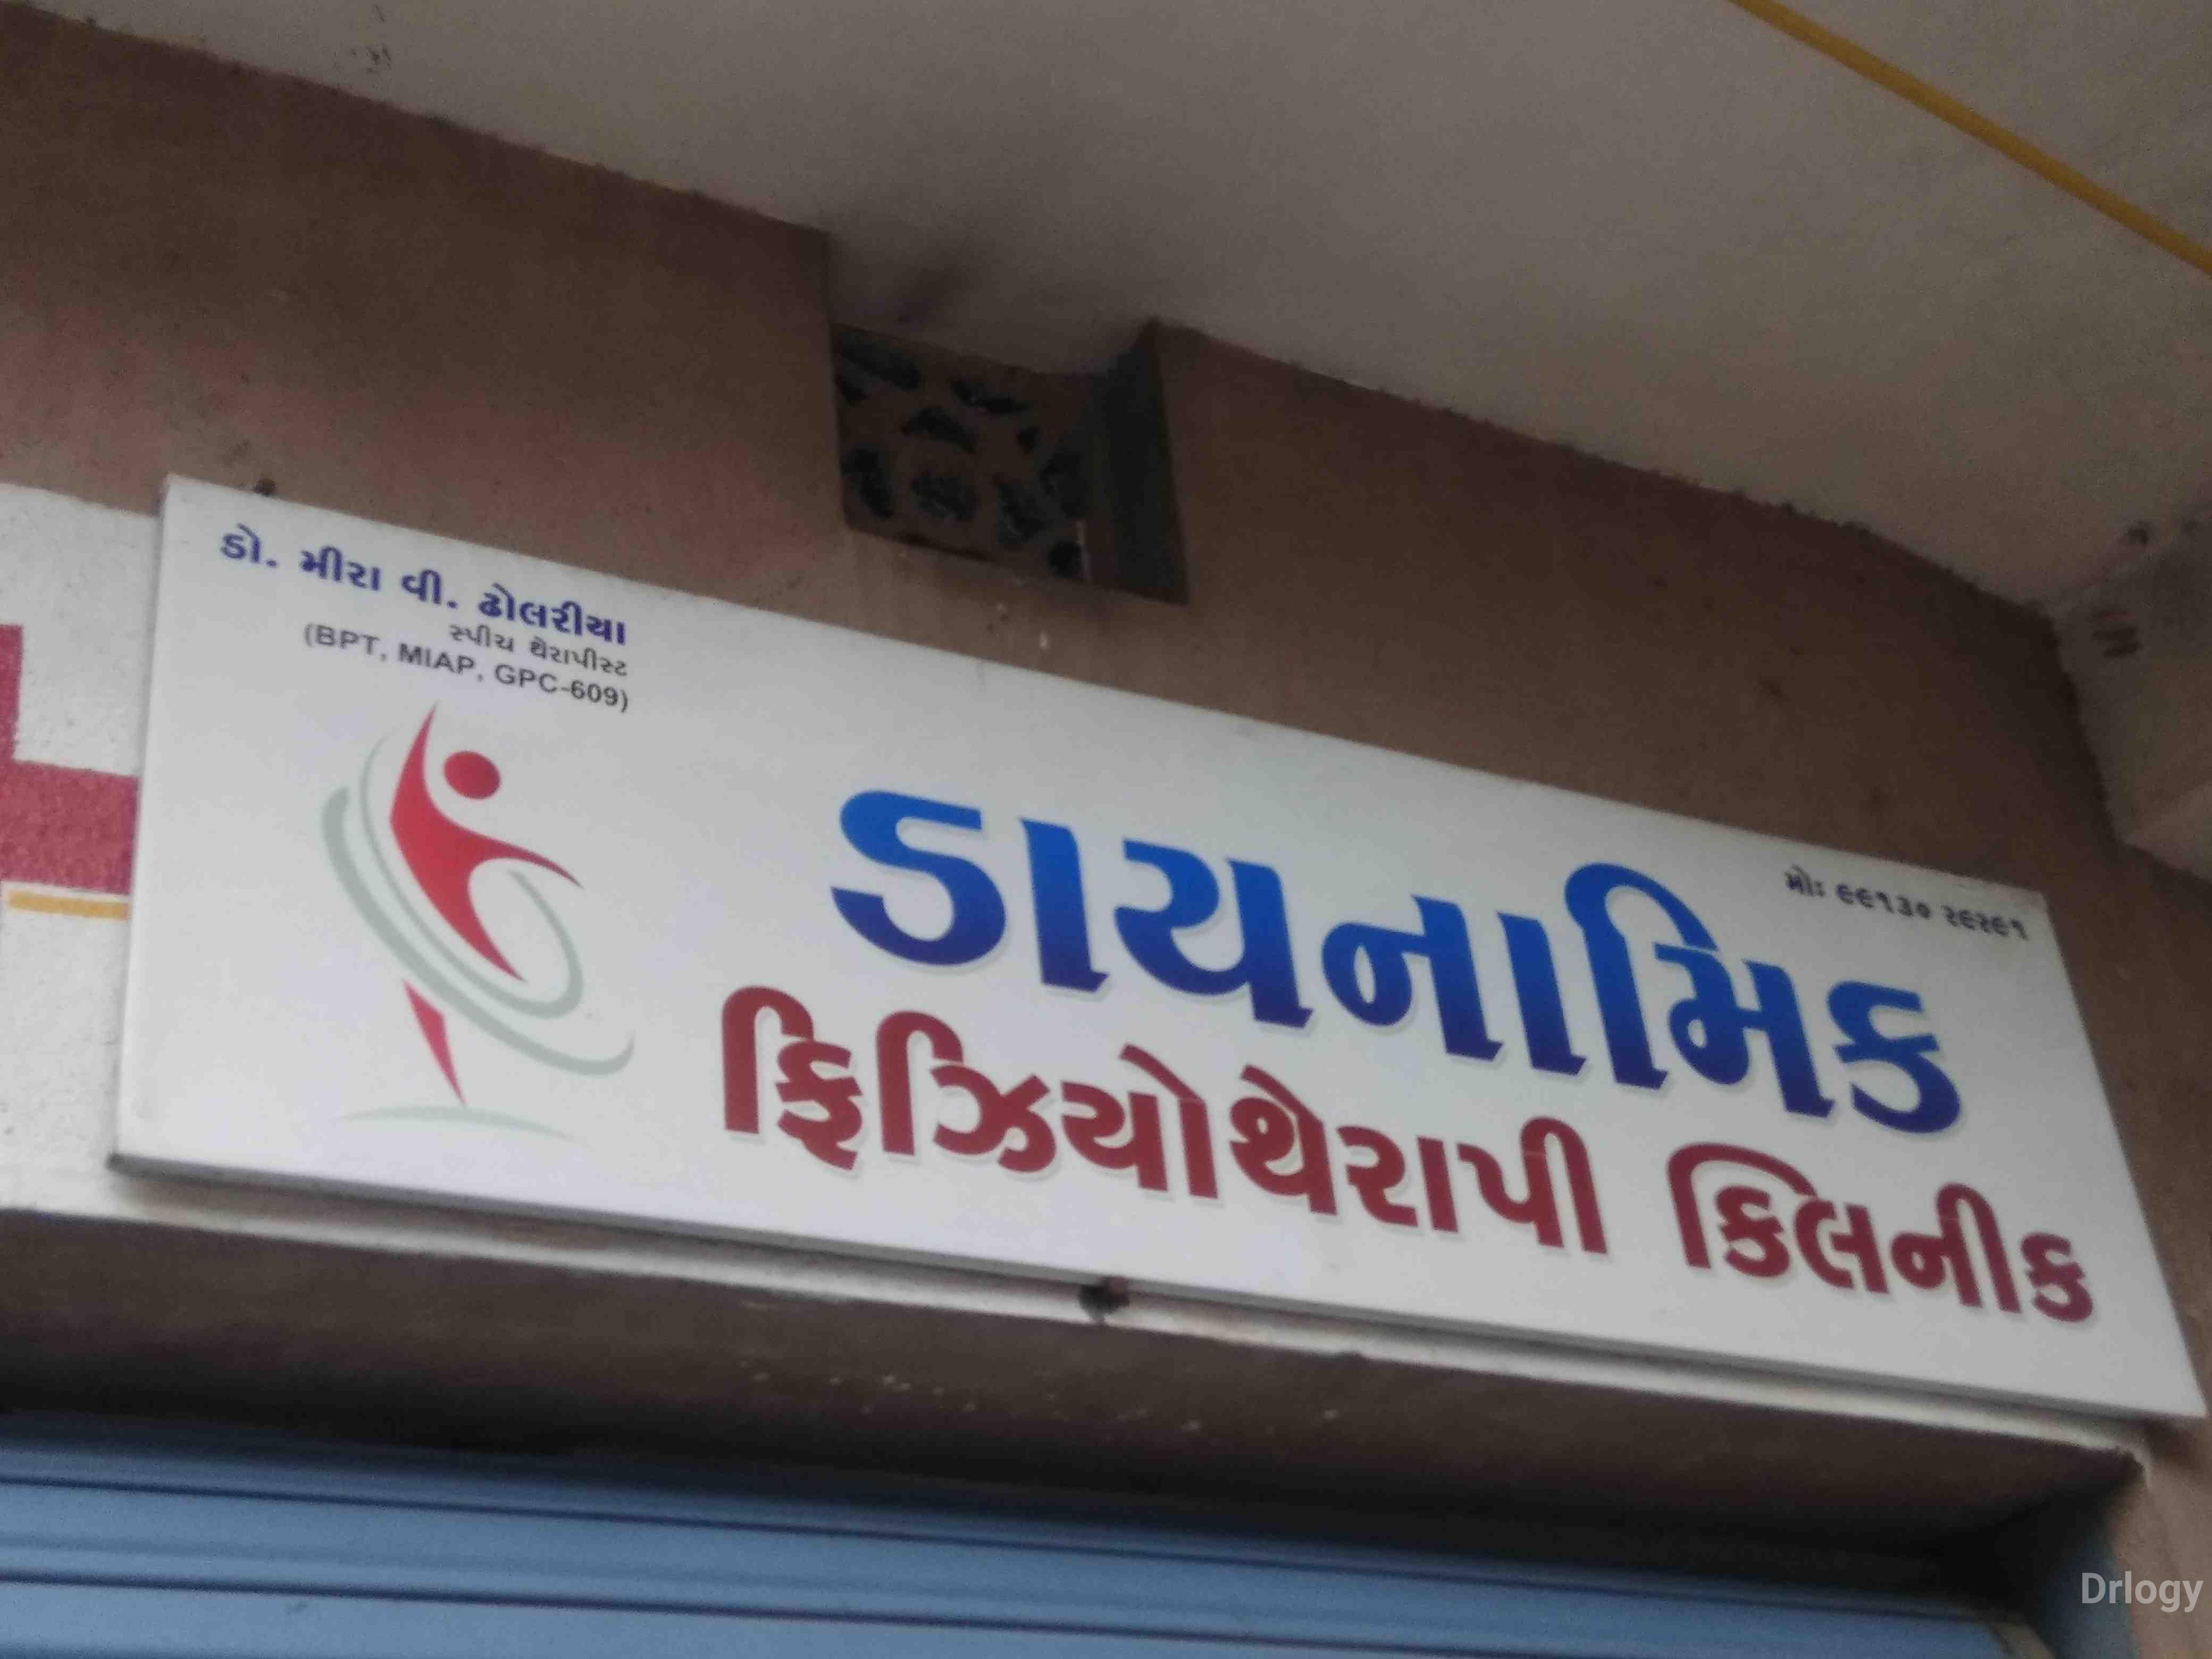 DYNAMIC PHYSIOTHERAPY in Rajkot